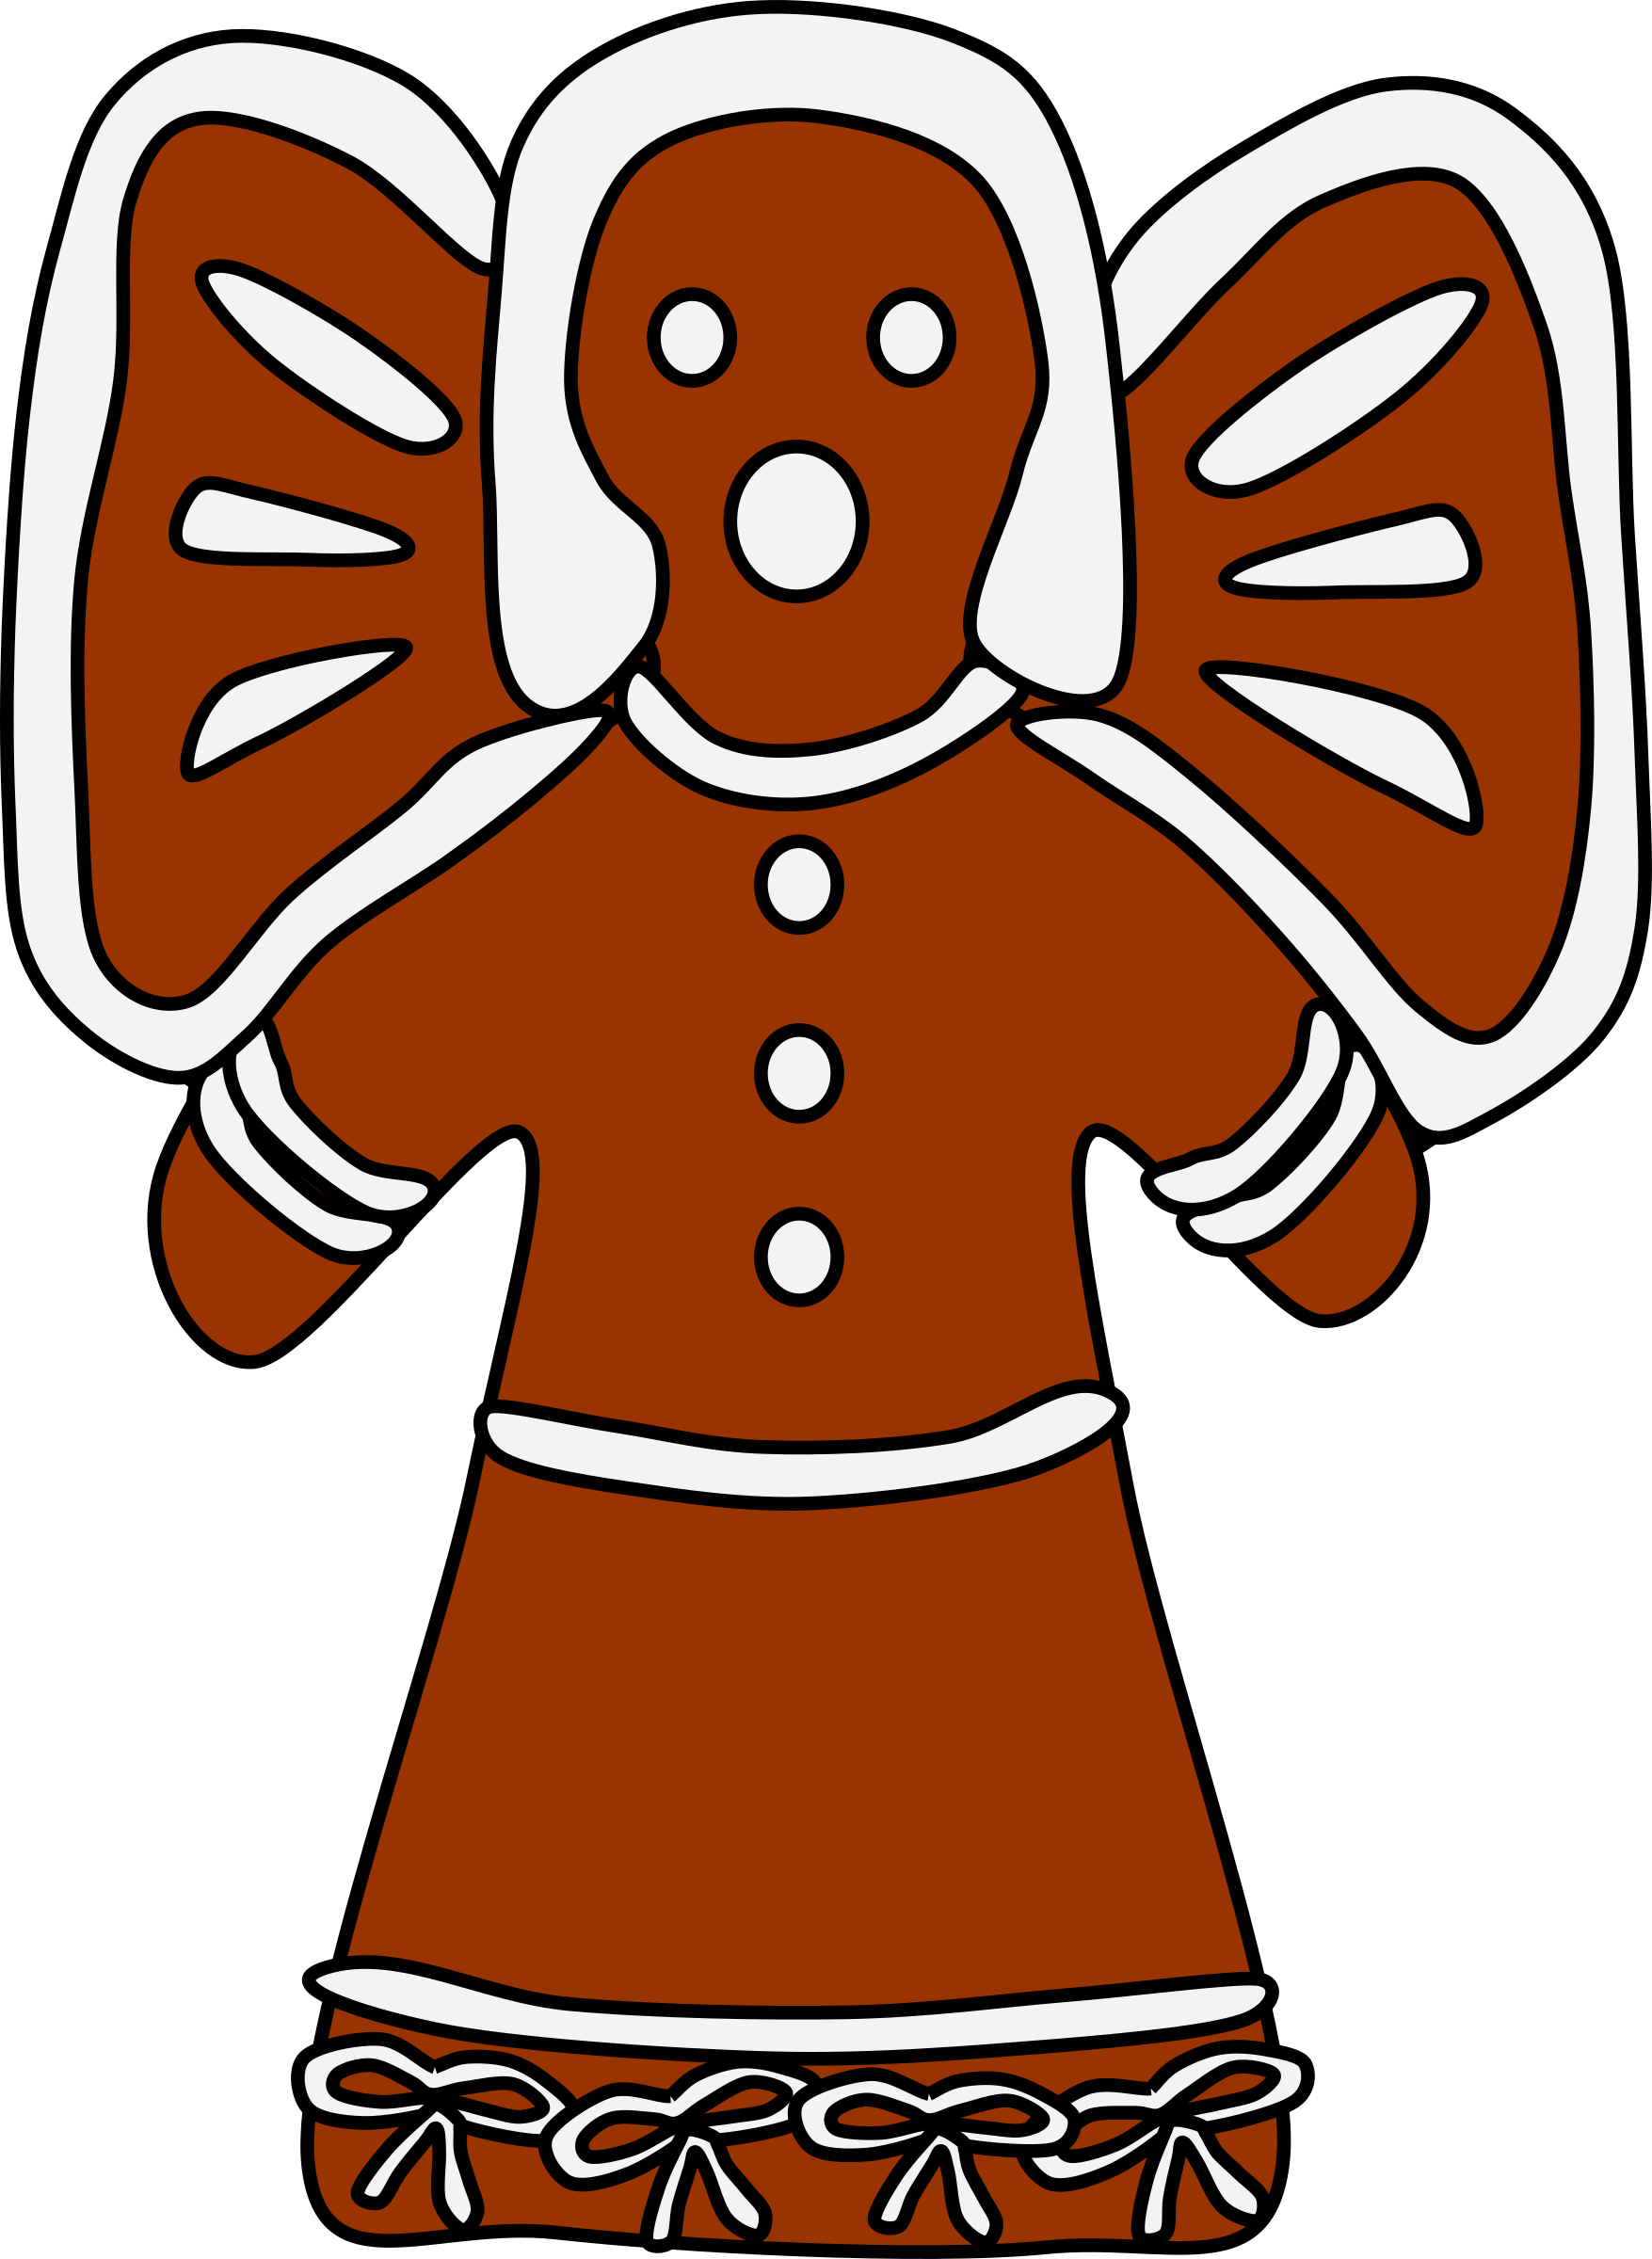 With bows big image. Gingerbread clipart angel